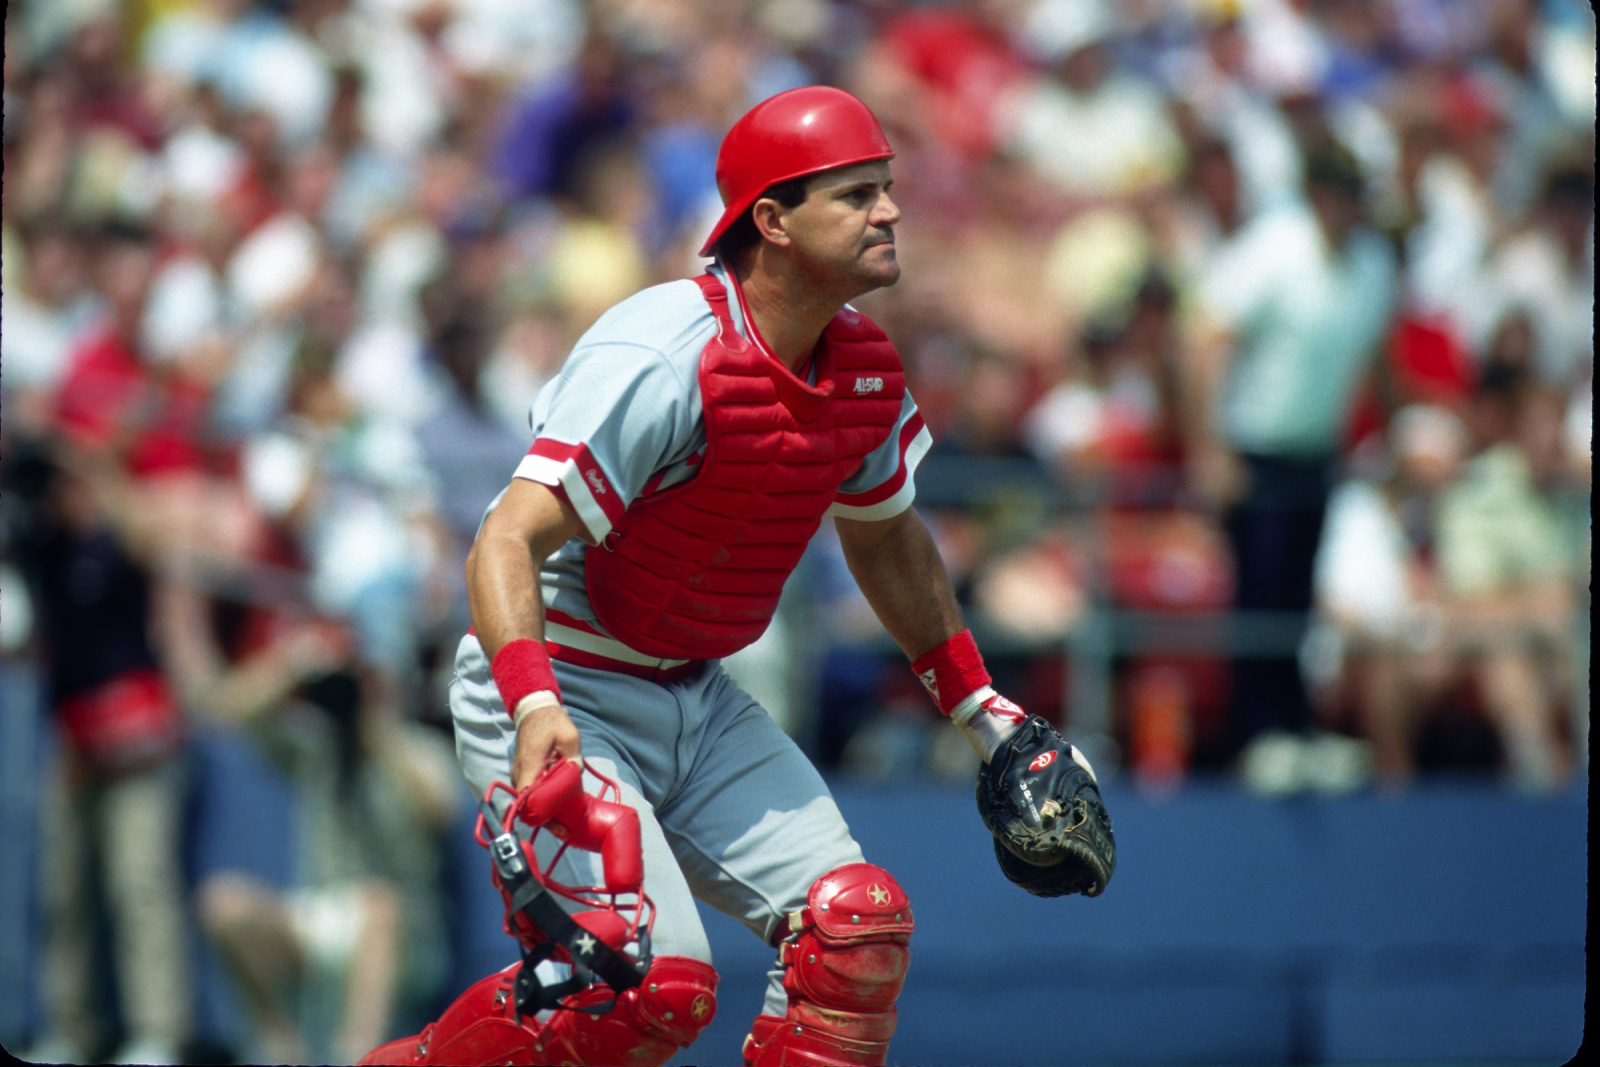 Bo Diaz proved to be a successful catcher with the Reds, Indians, and Phillies. However, his life and baseball career, ended way too soon.